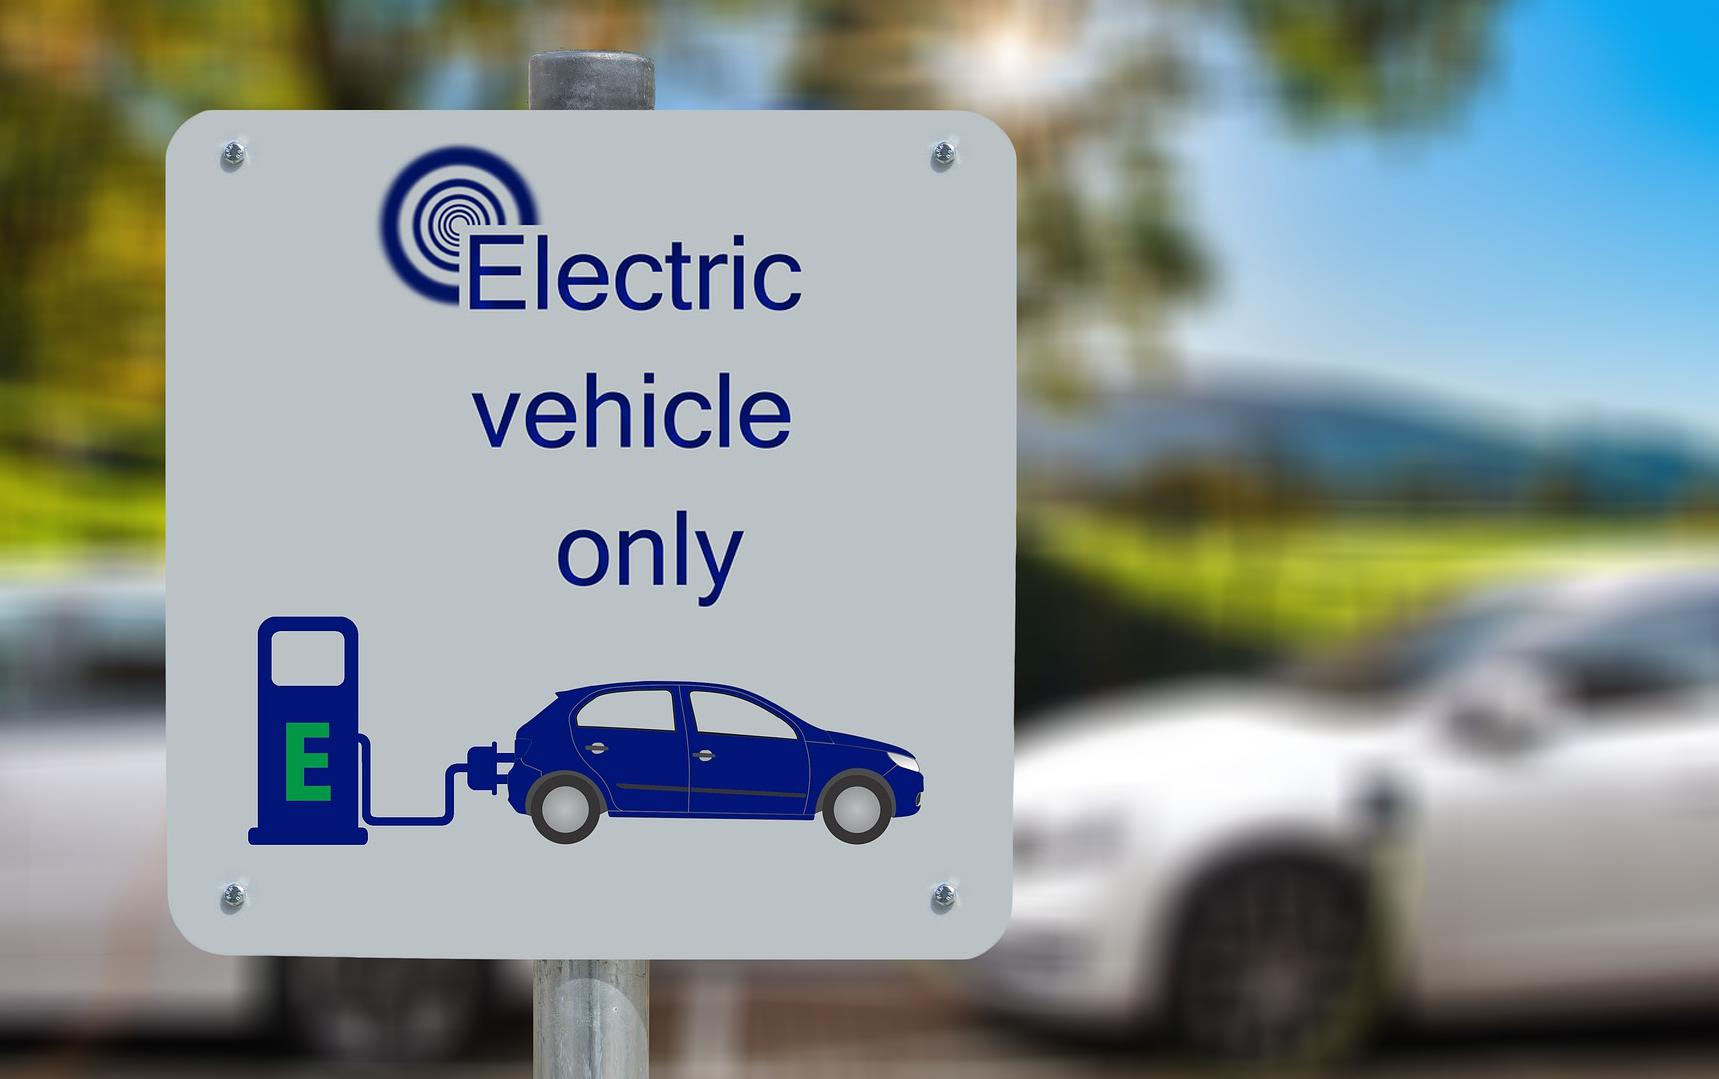 Electric Charging with Load Balancing for Home or Office